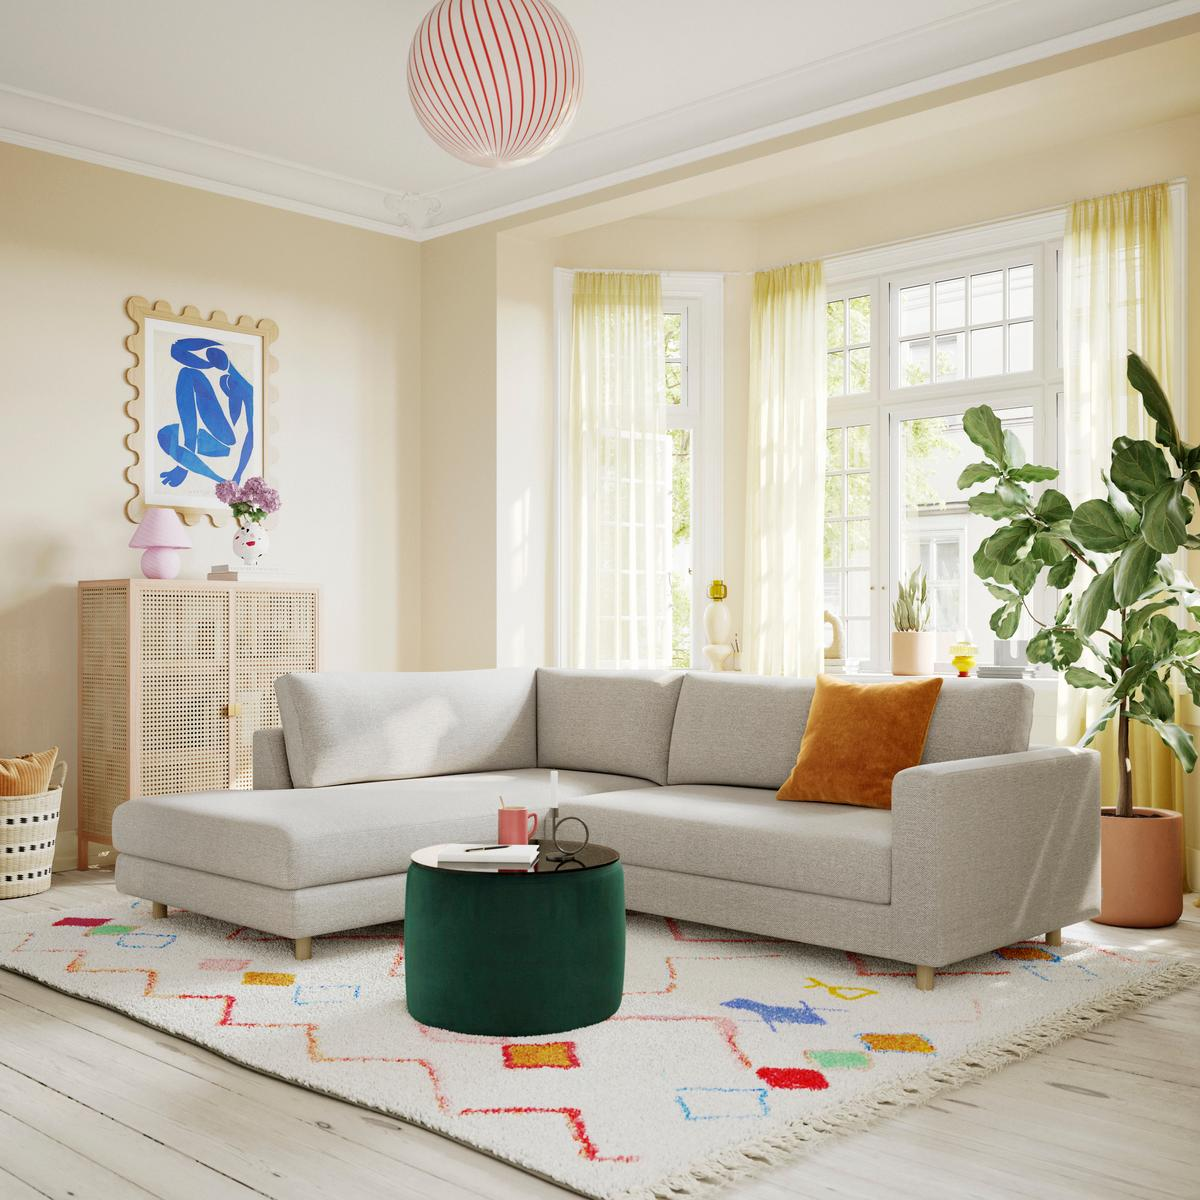 Interior design, Living room, Brown, Couch, Property, Furniture, Plant, White, Wood, Lighting